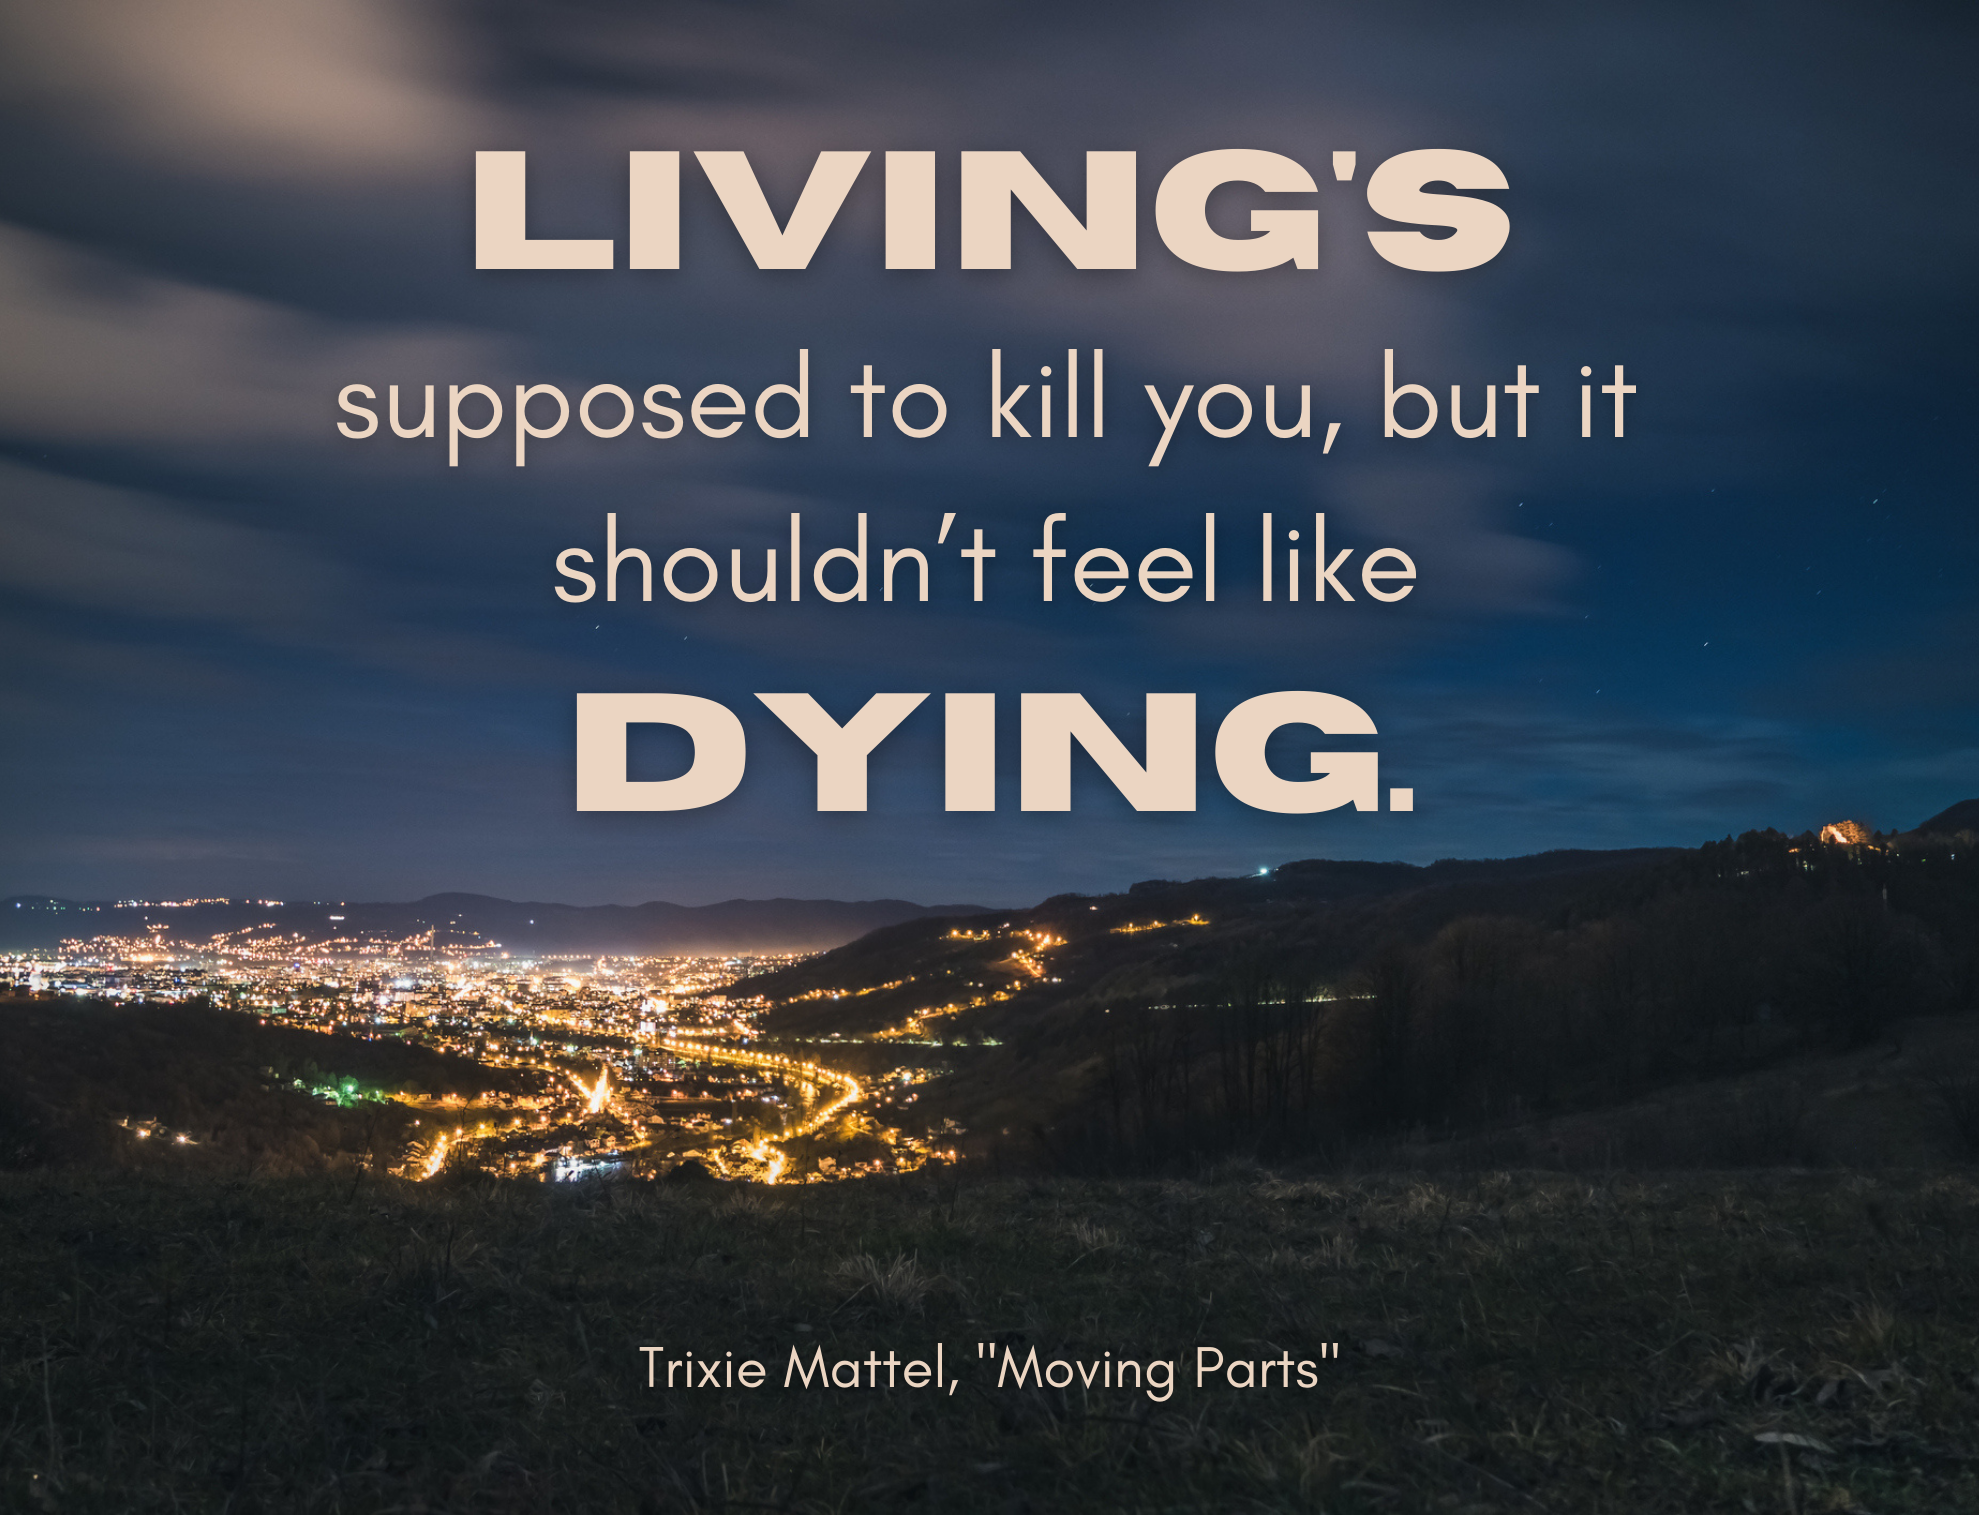 """""""Living's supposed to kill you, but it shouldn't feel like dying"""" by Trixie Mattel over a city at dusk"""